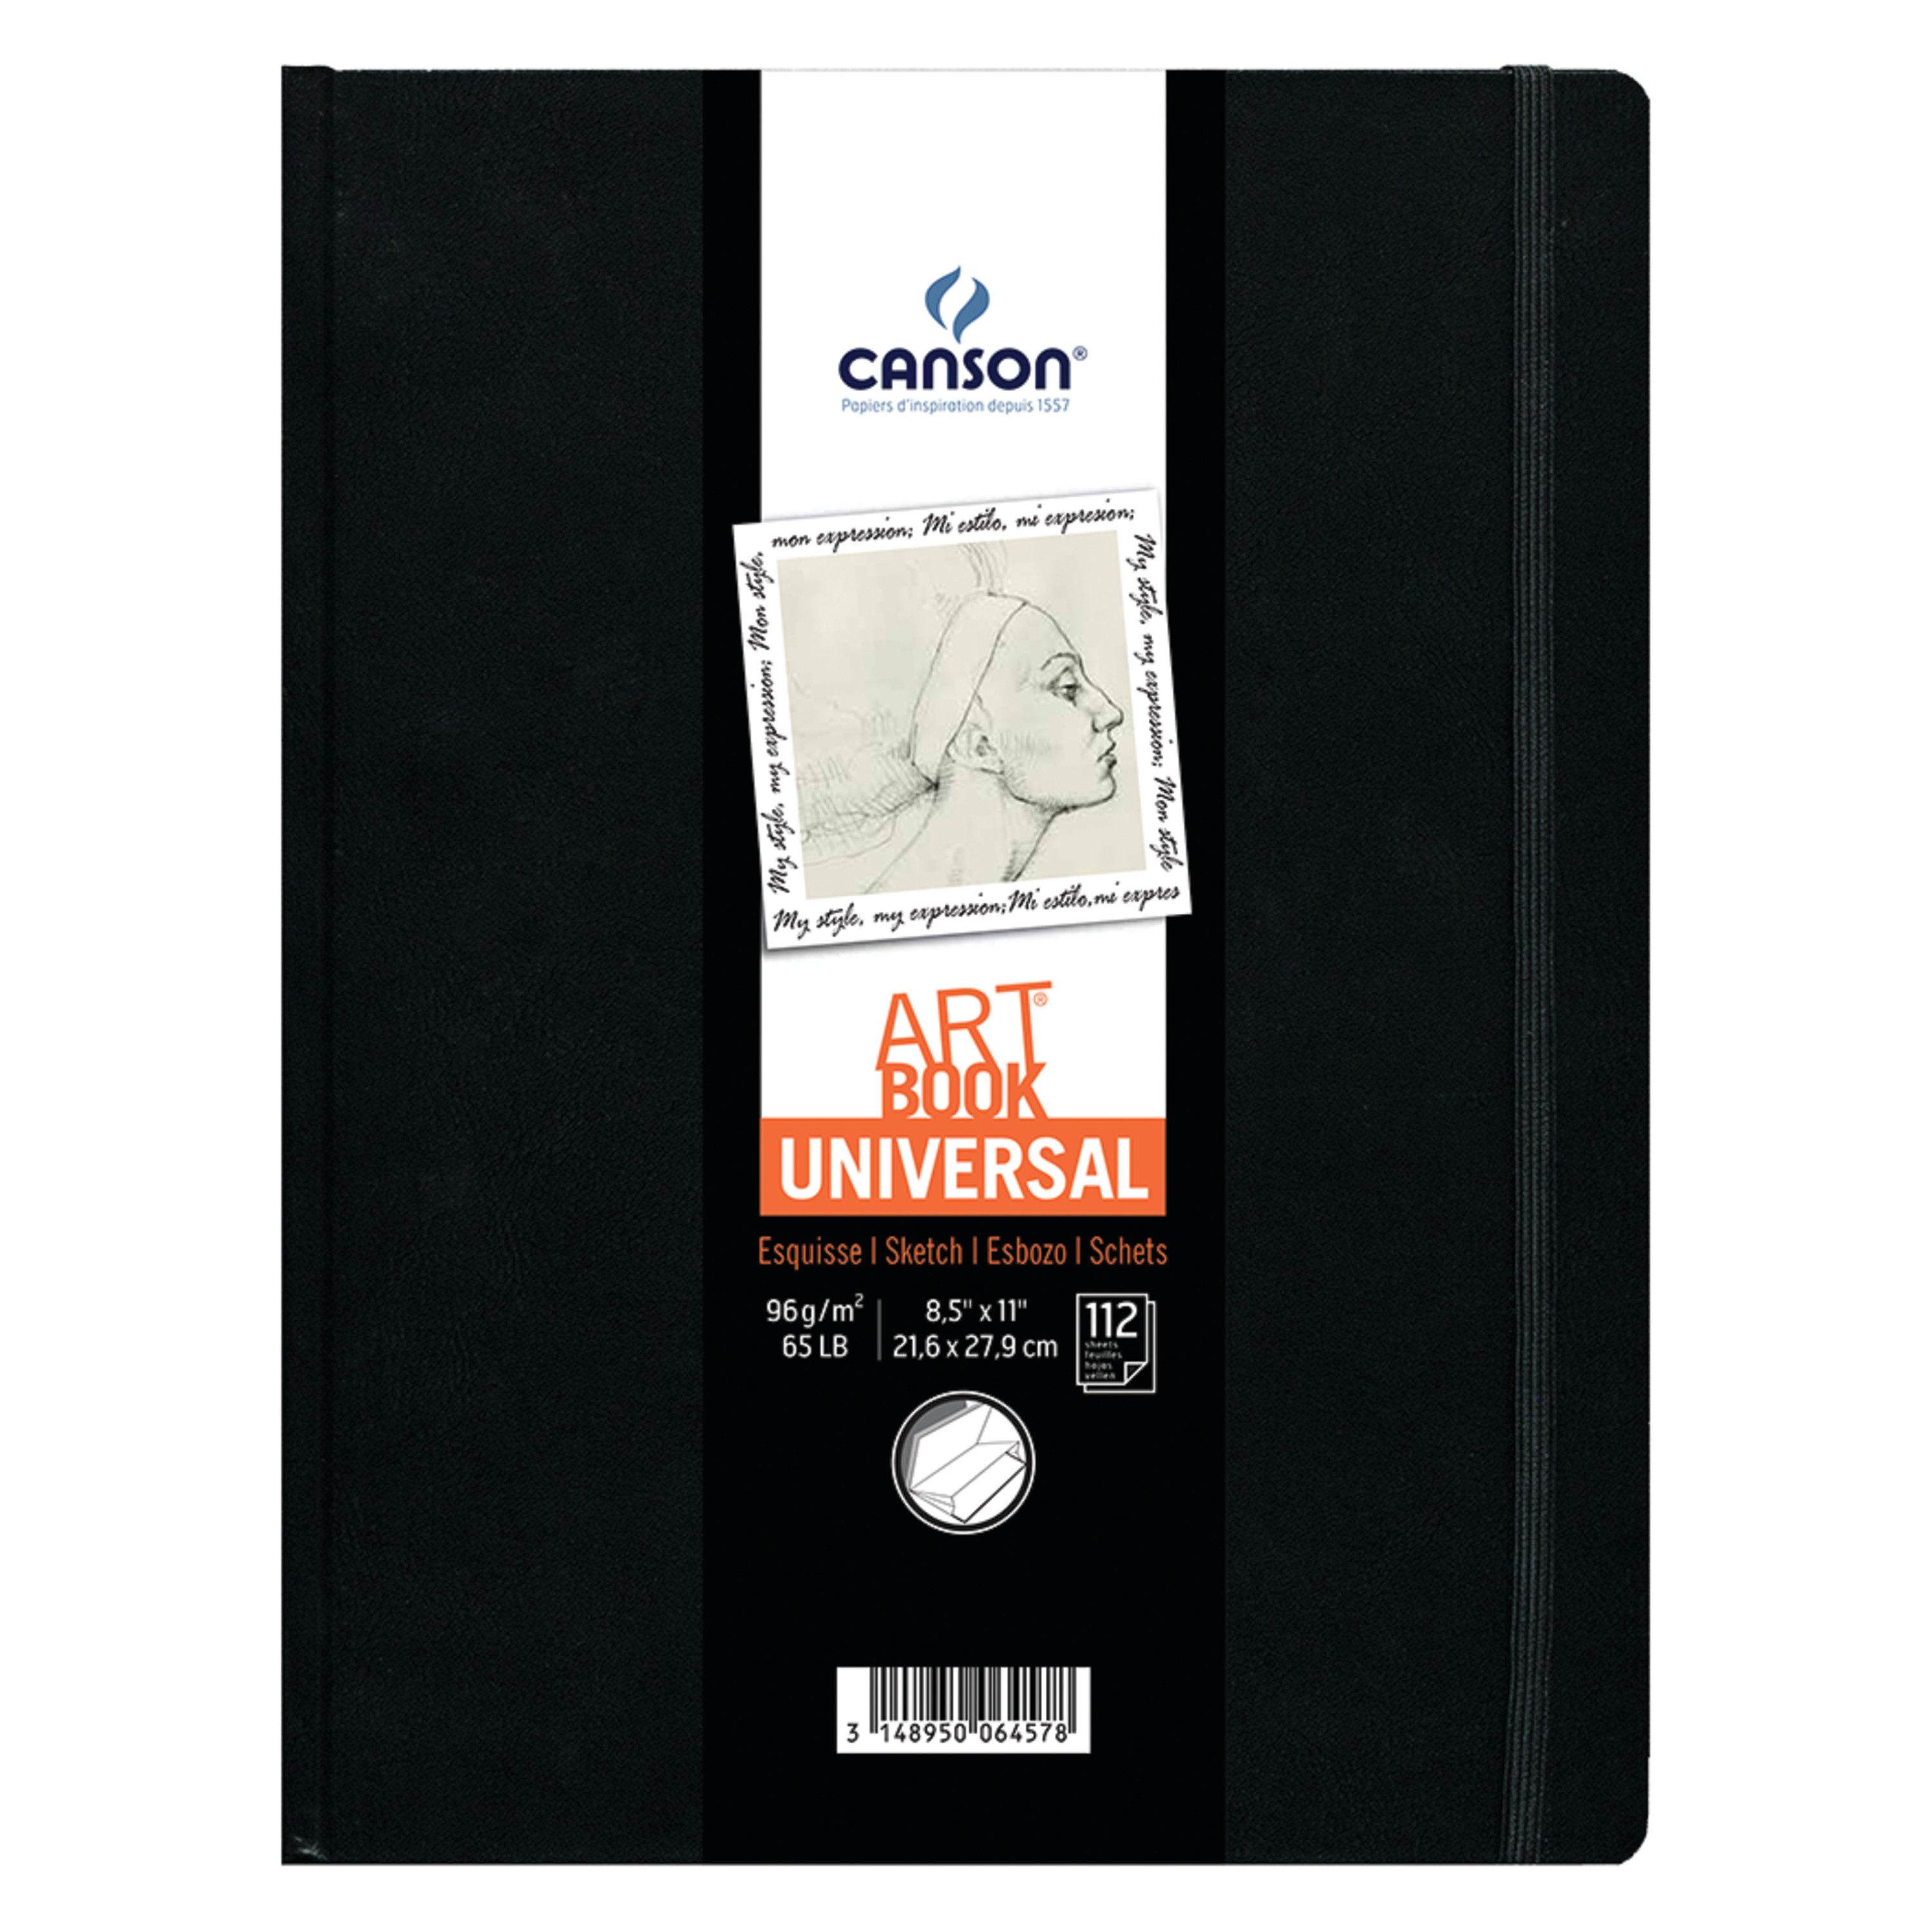 Canson Universal Art Book, Hard-Bound, 8.5in x 11in